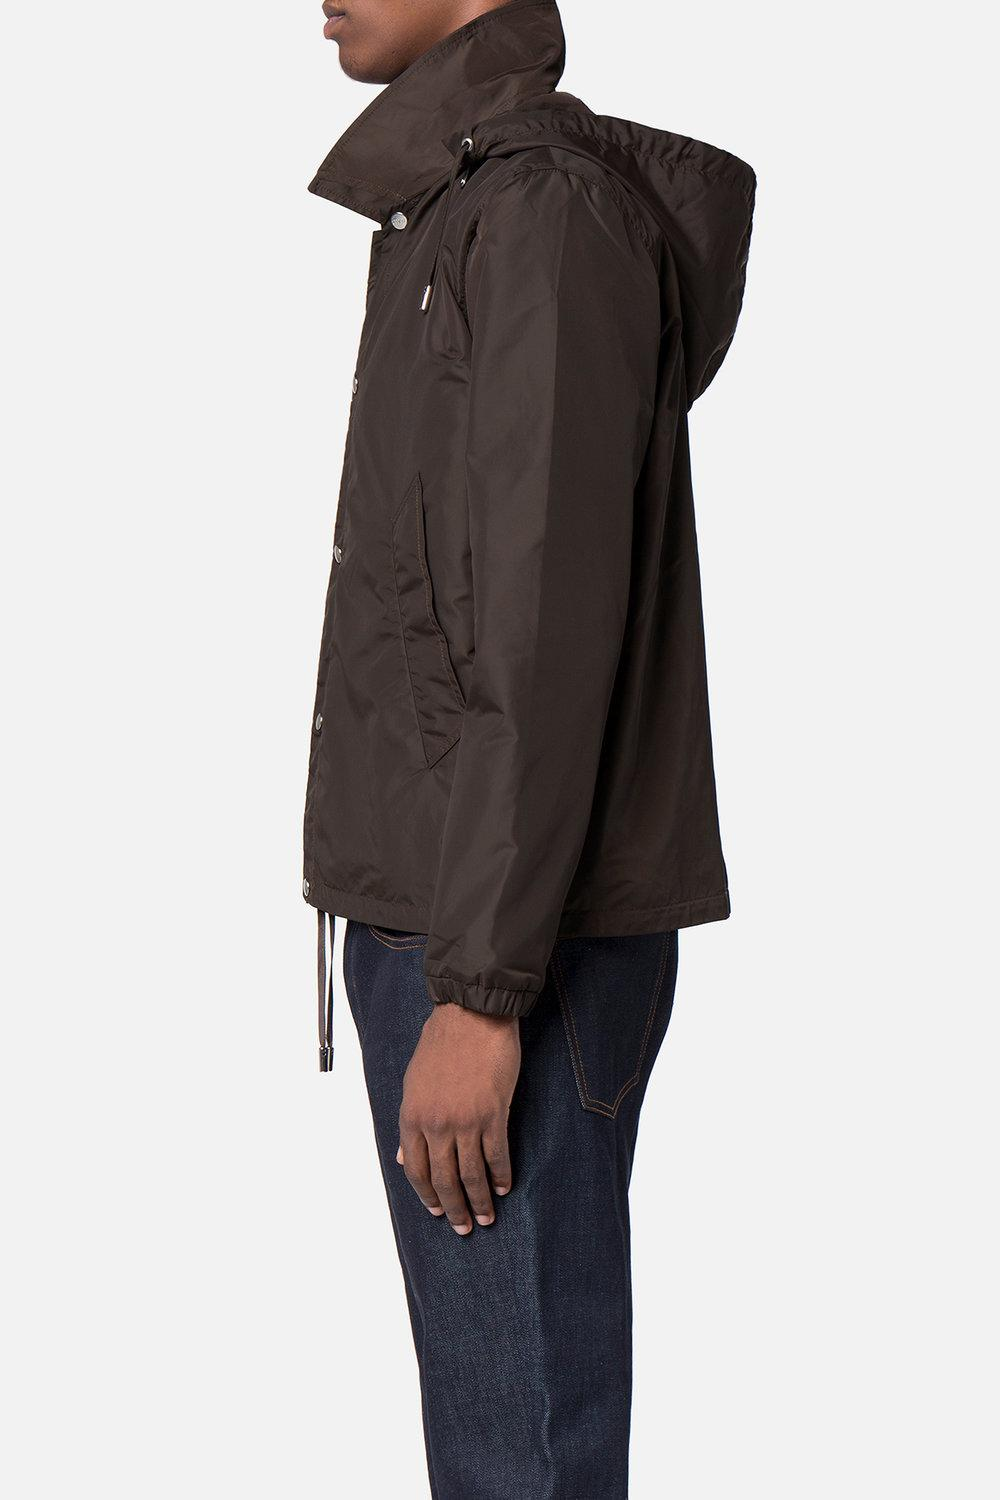 AMI Synthetic Hooded Jacket in Brown for Men